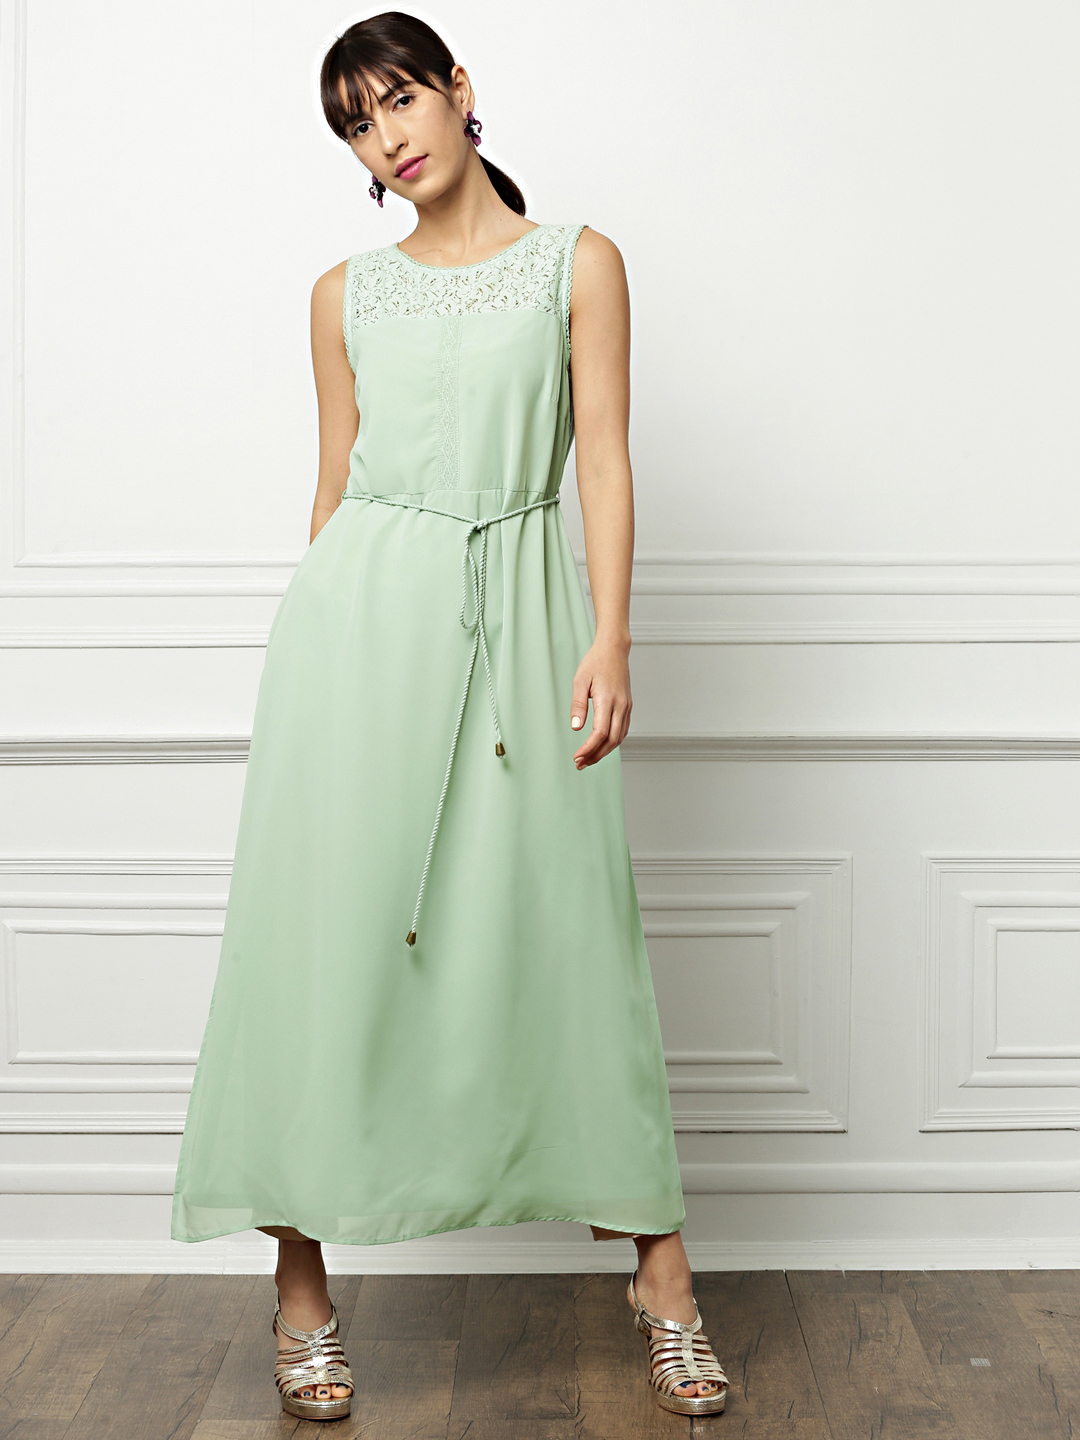 all about you from Deepika Padukone Women Sea Green Solid Maxi Dress Price in India